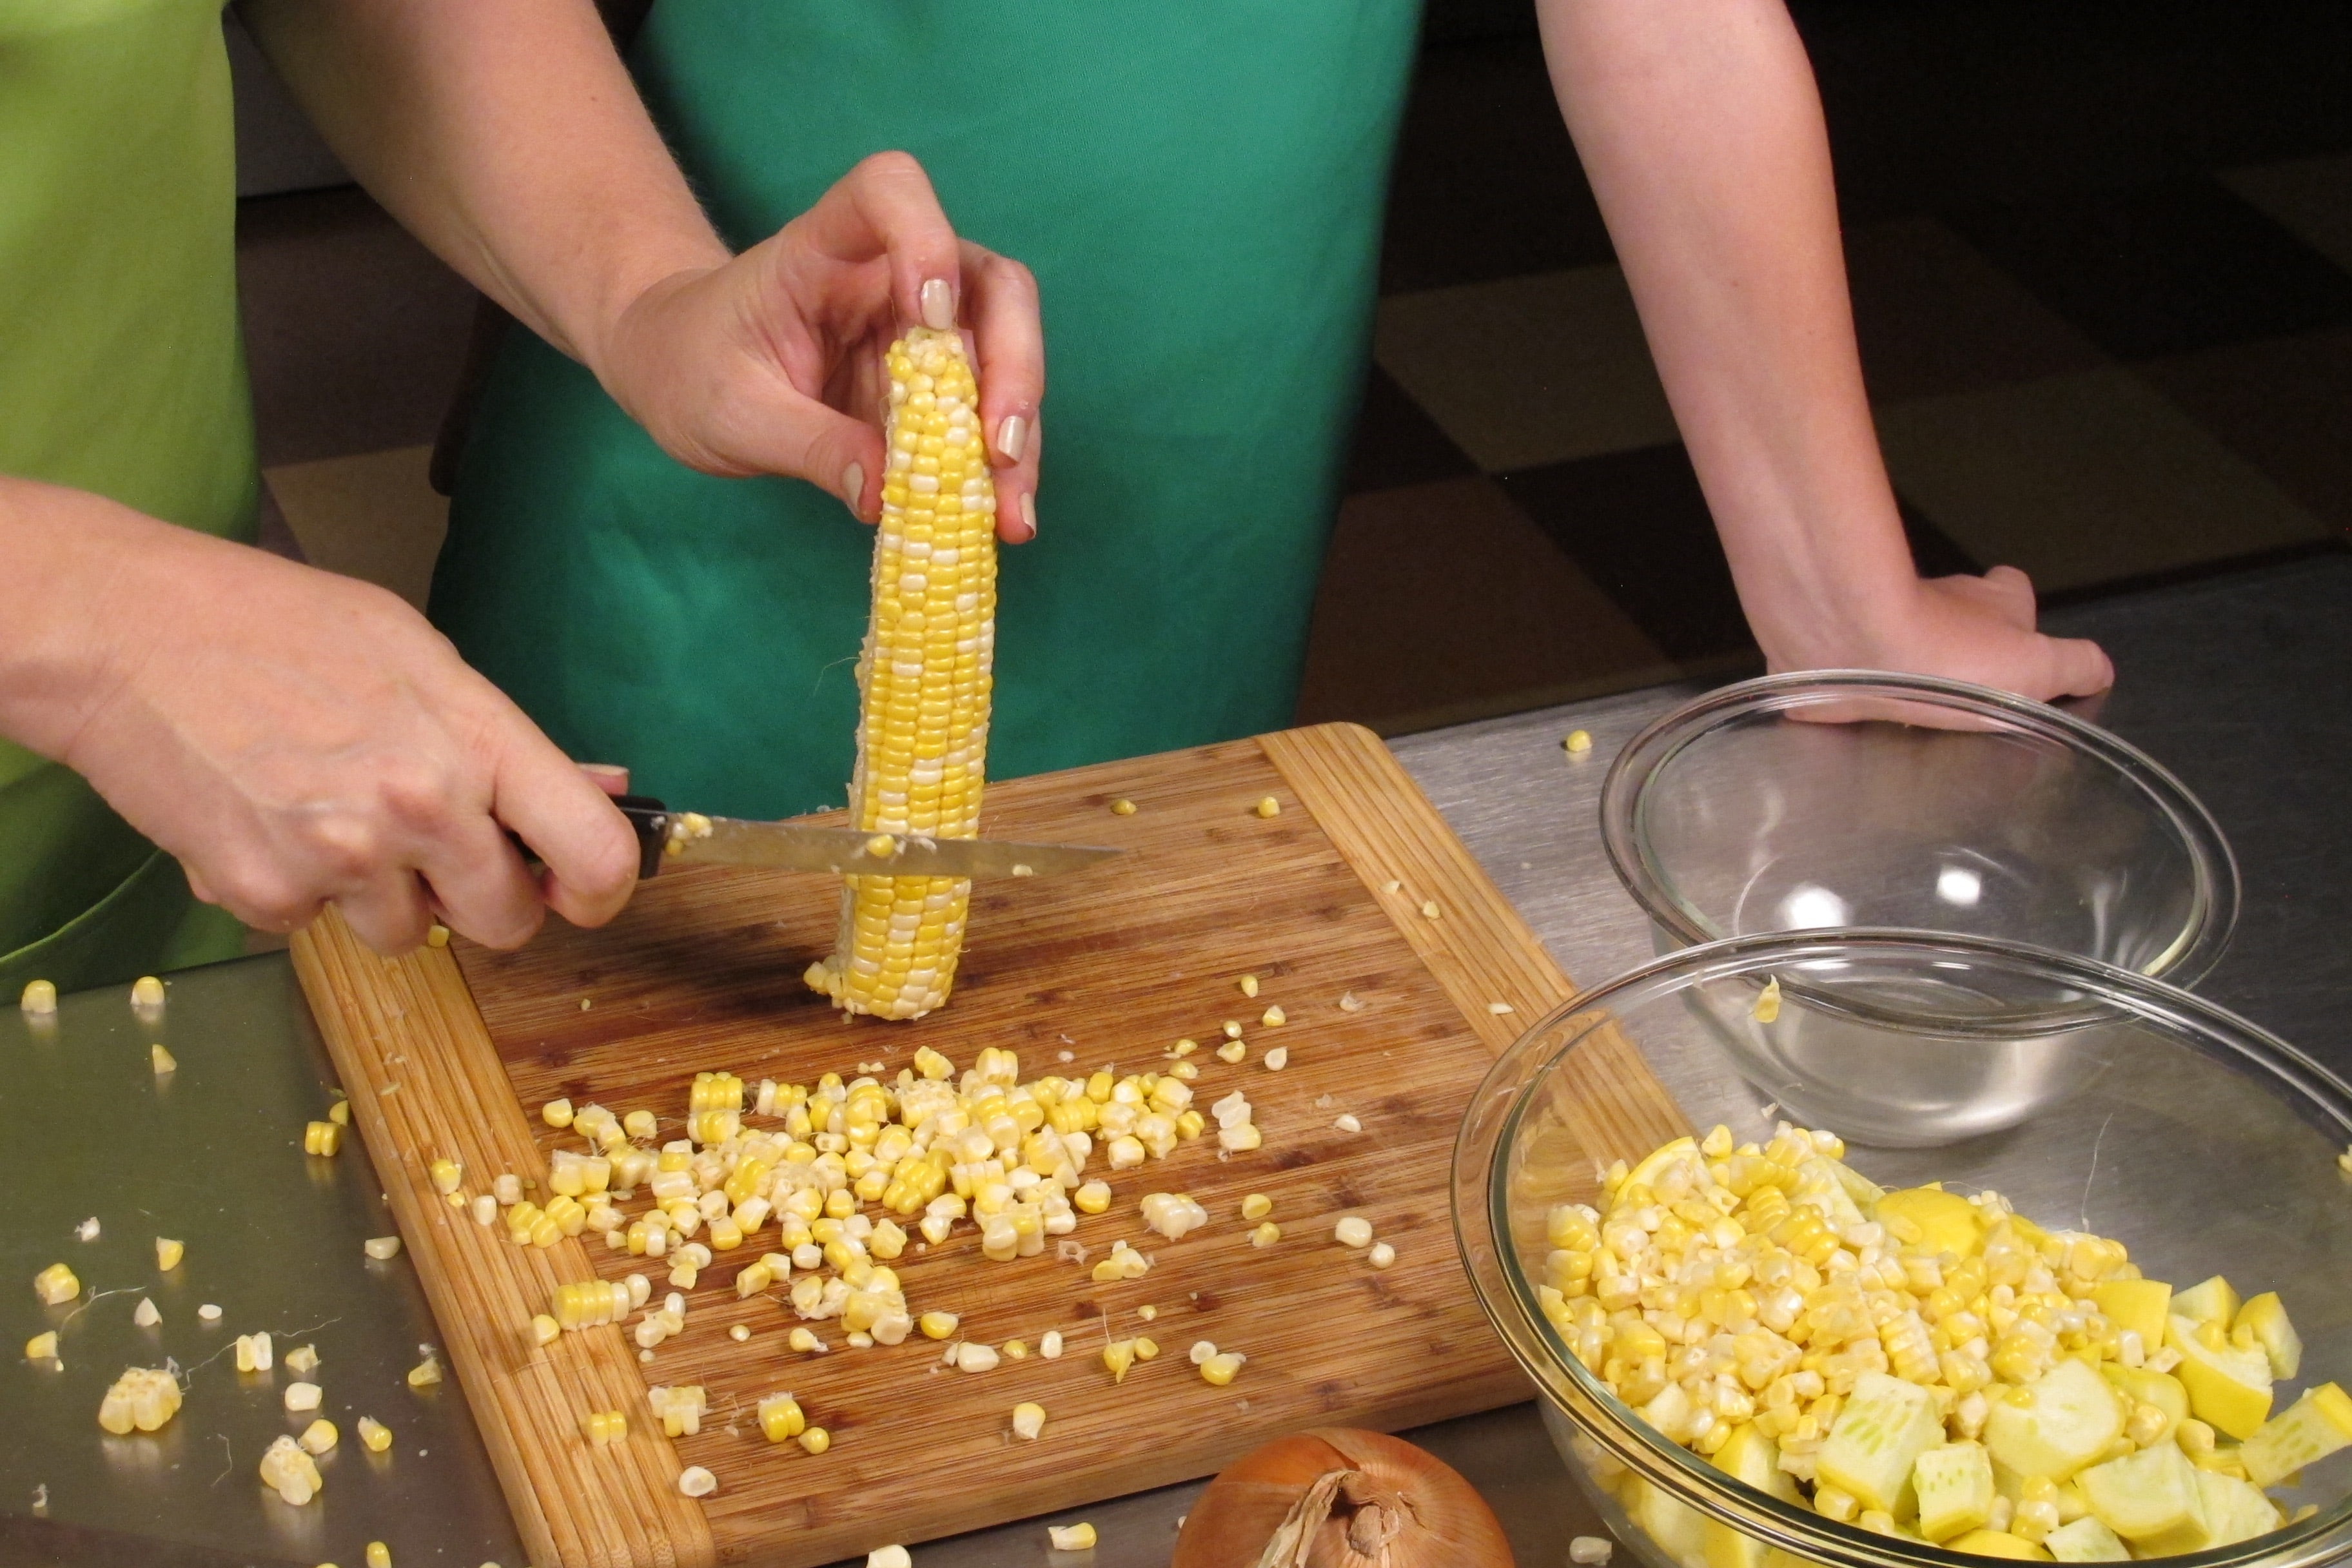 If using fresh corn-on-the-cob, have an adult or experienced slicer remove the kernels.